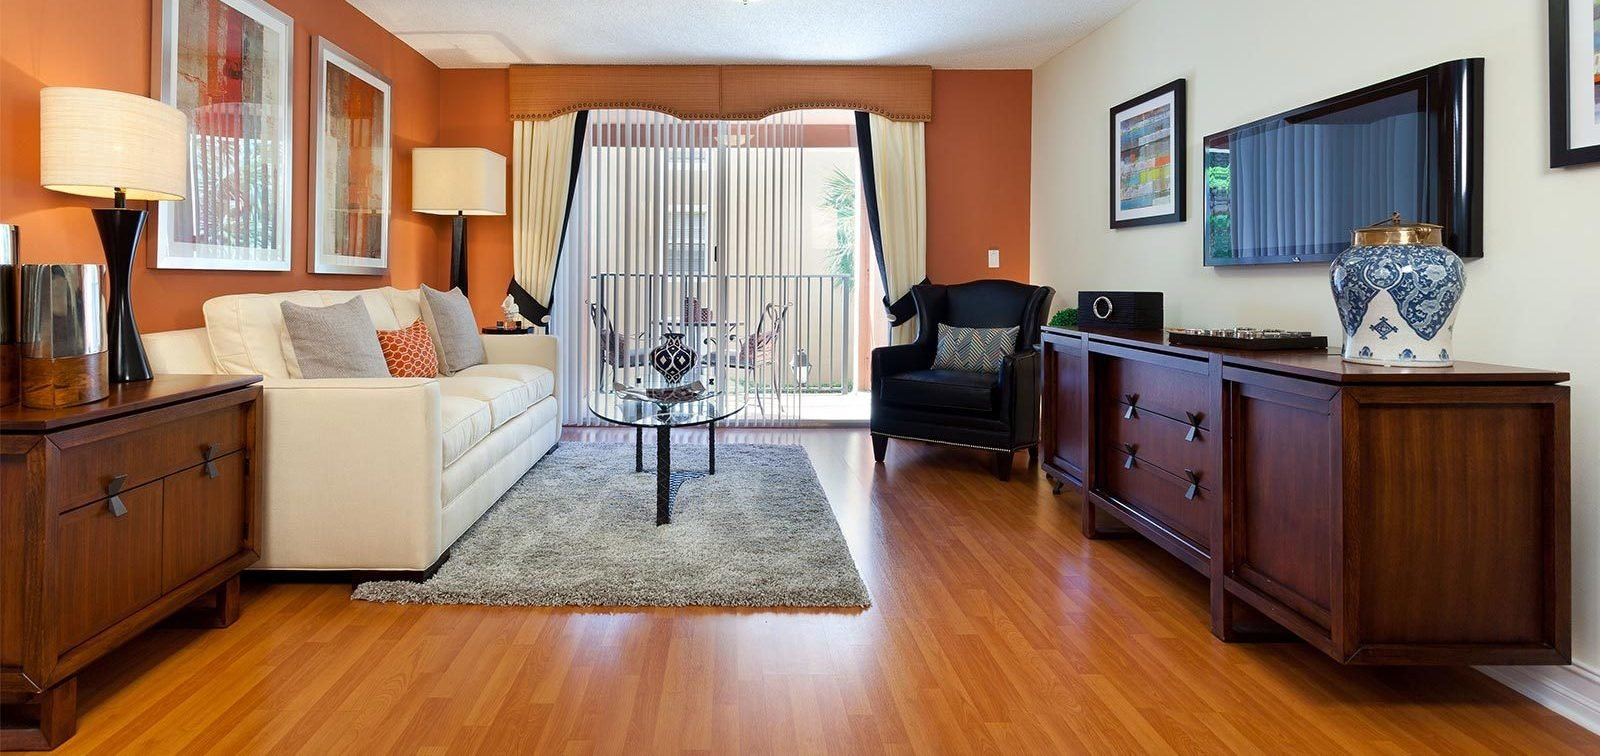 Best Crescent House Apartments Apartments In Miami Lakes Fl With Pictures